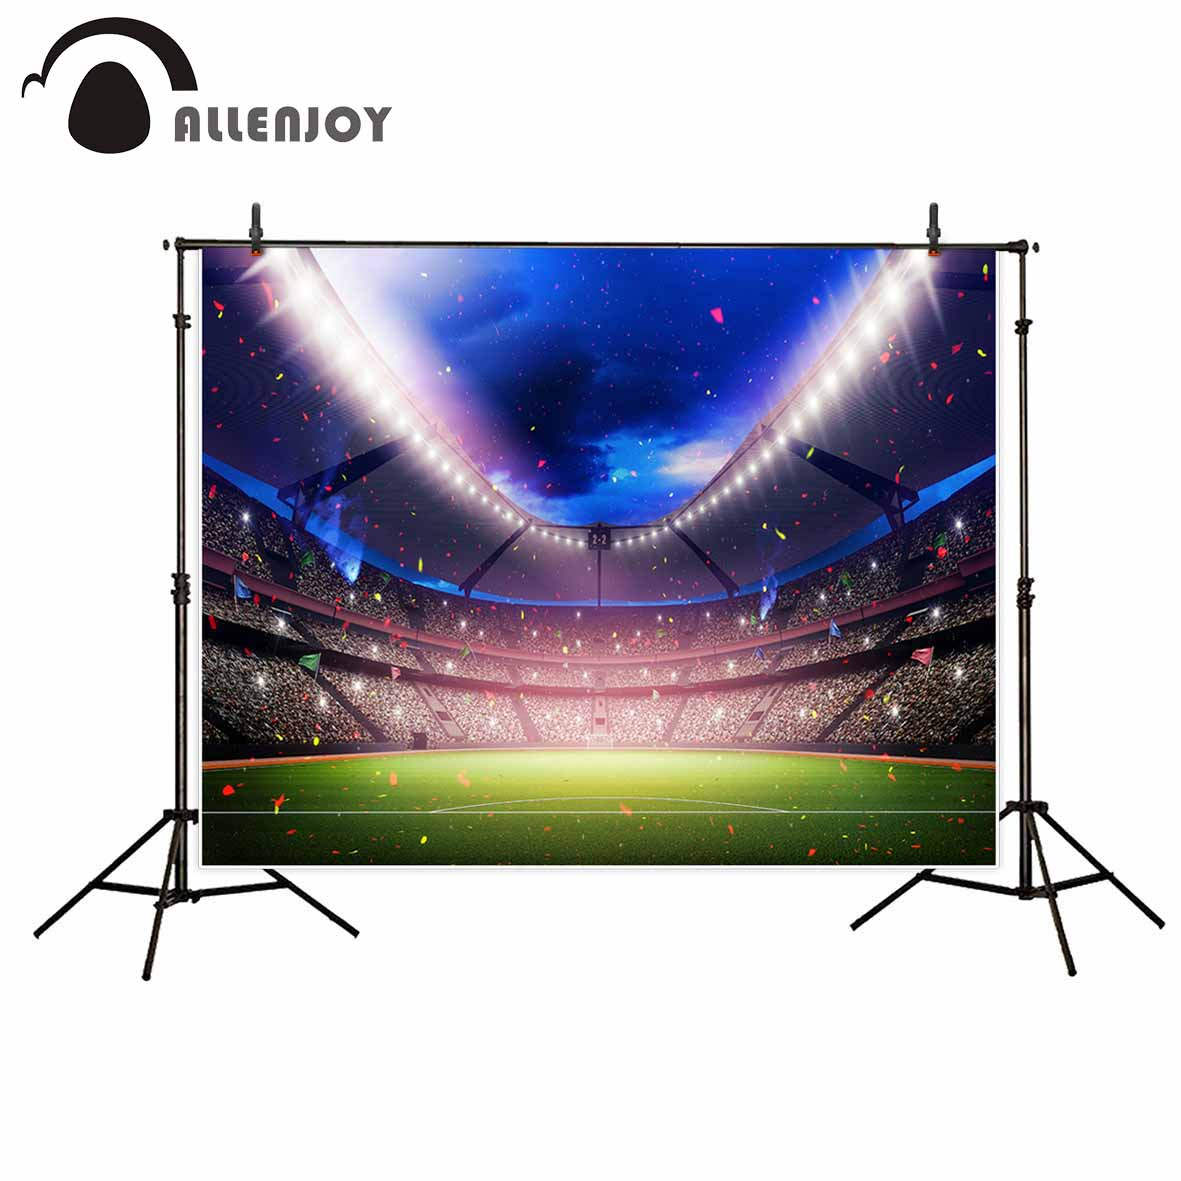 Allenjoy photographic background Banner Ribbon Gymnasium Sports Football new arrivals backdrop photocall photo printed customize